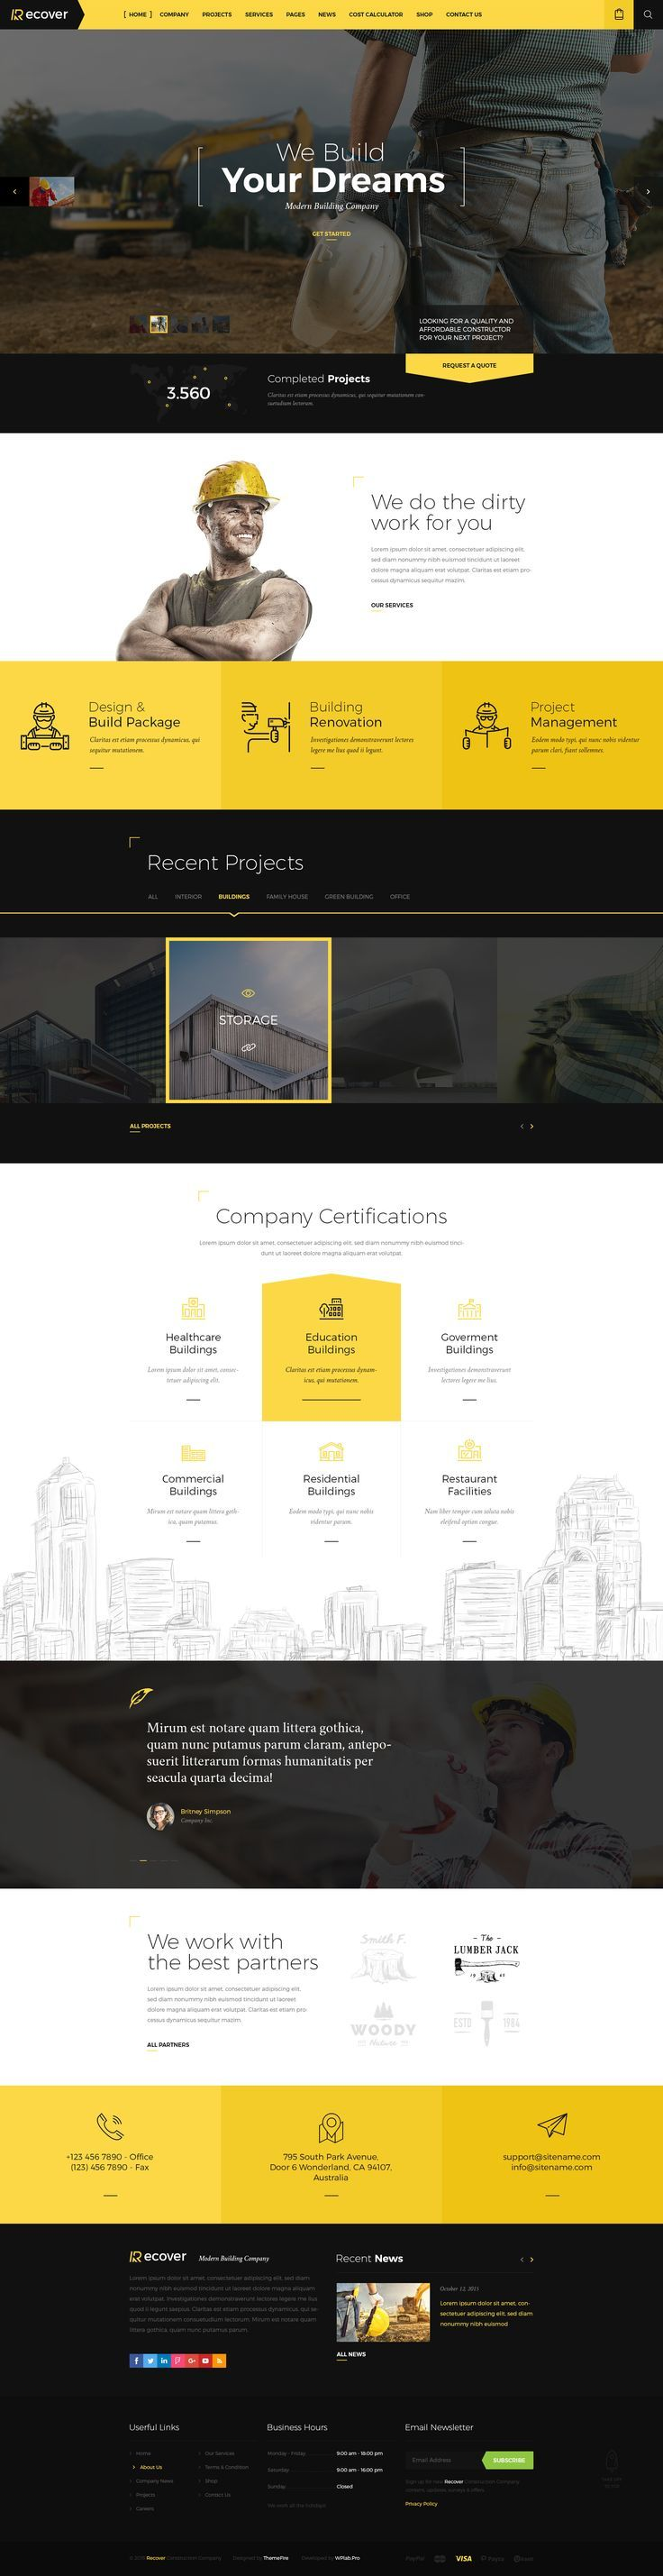 http://themeforest.net/item/recover-construction-building-psd-template/13812922?s_phrase=. If you like UX, design, or design thinking, check out theuxblog.com